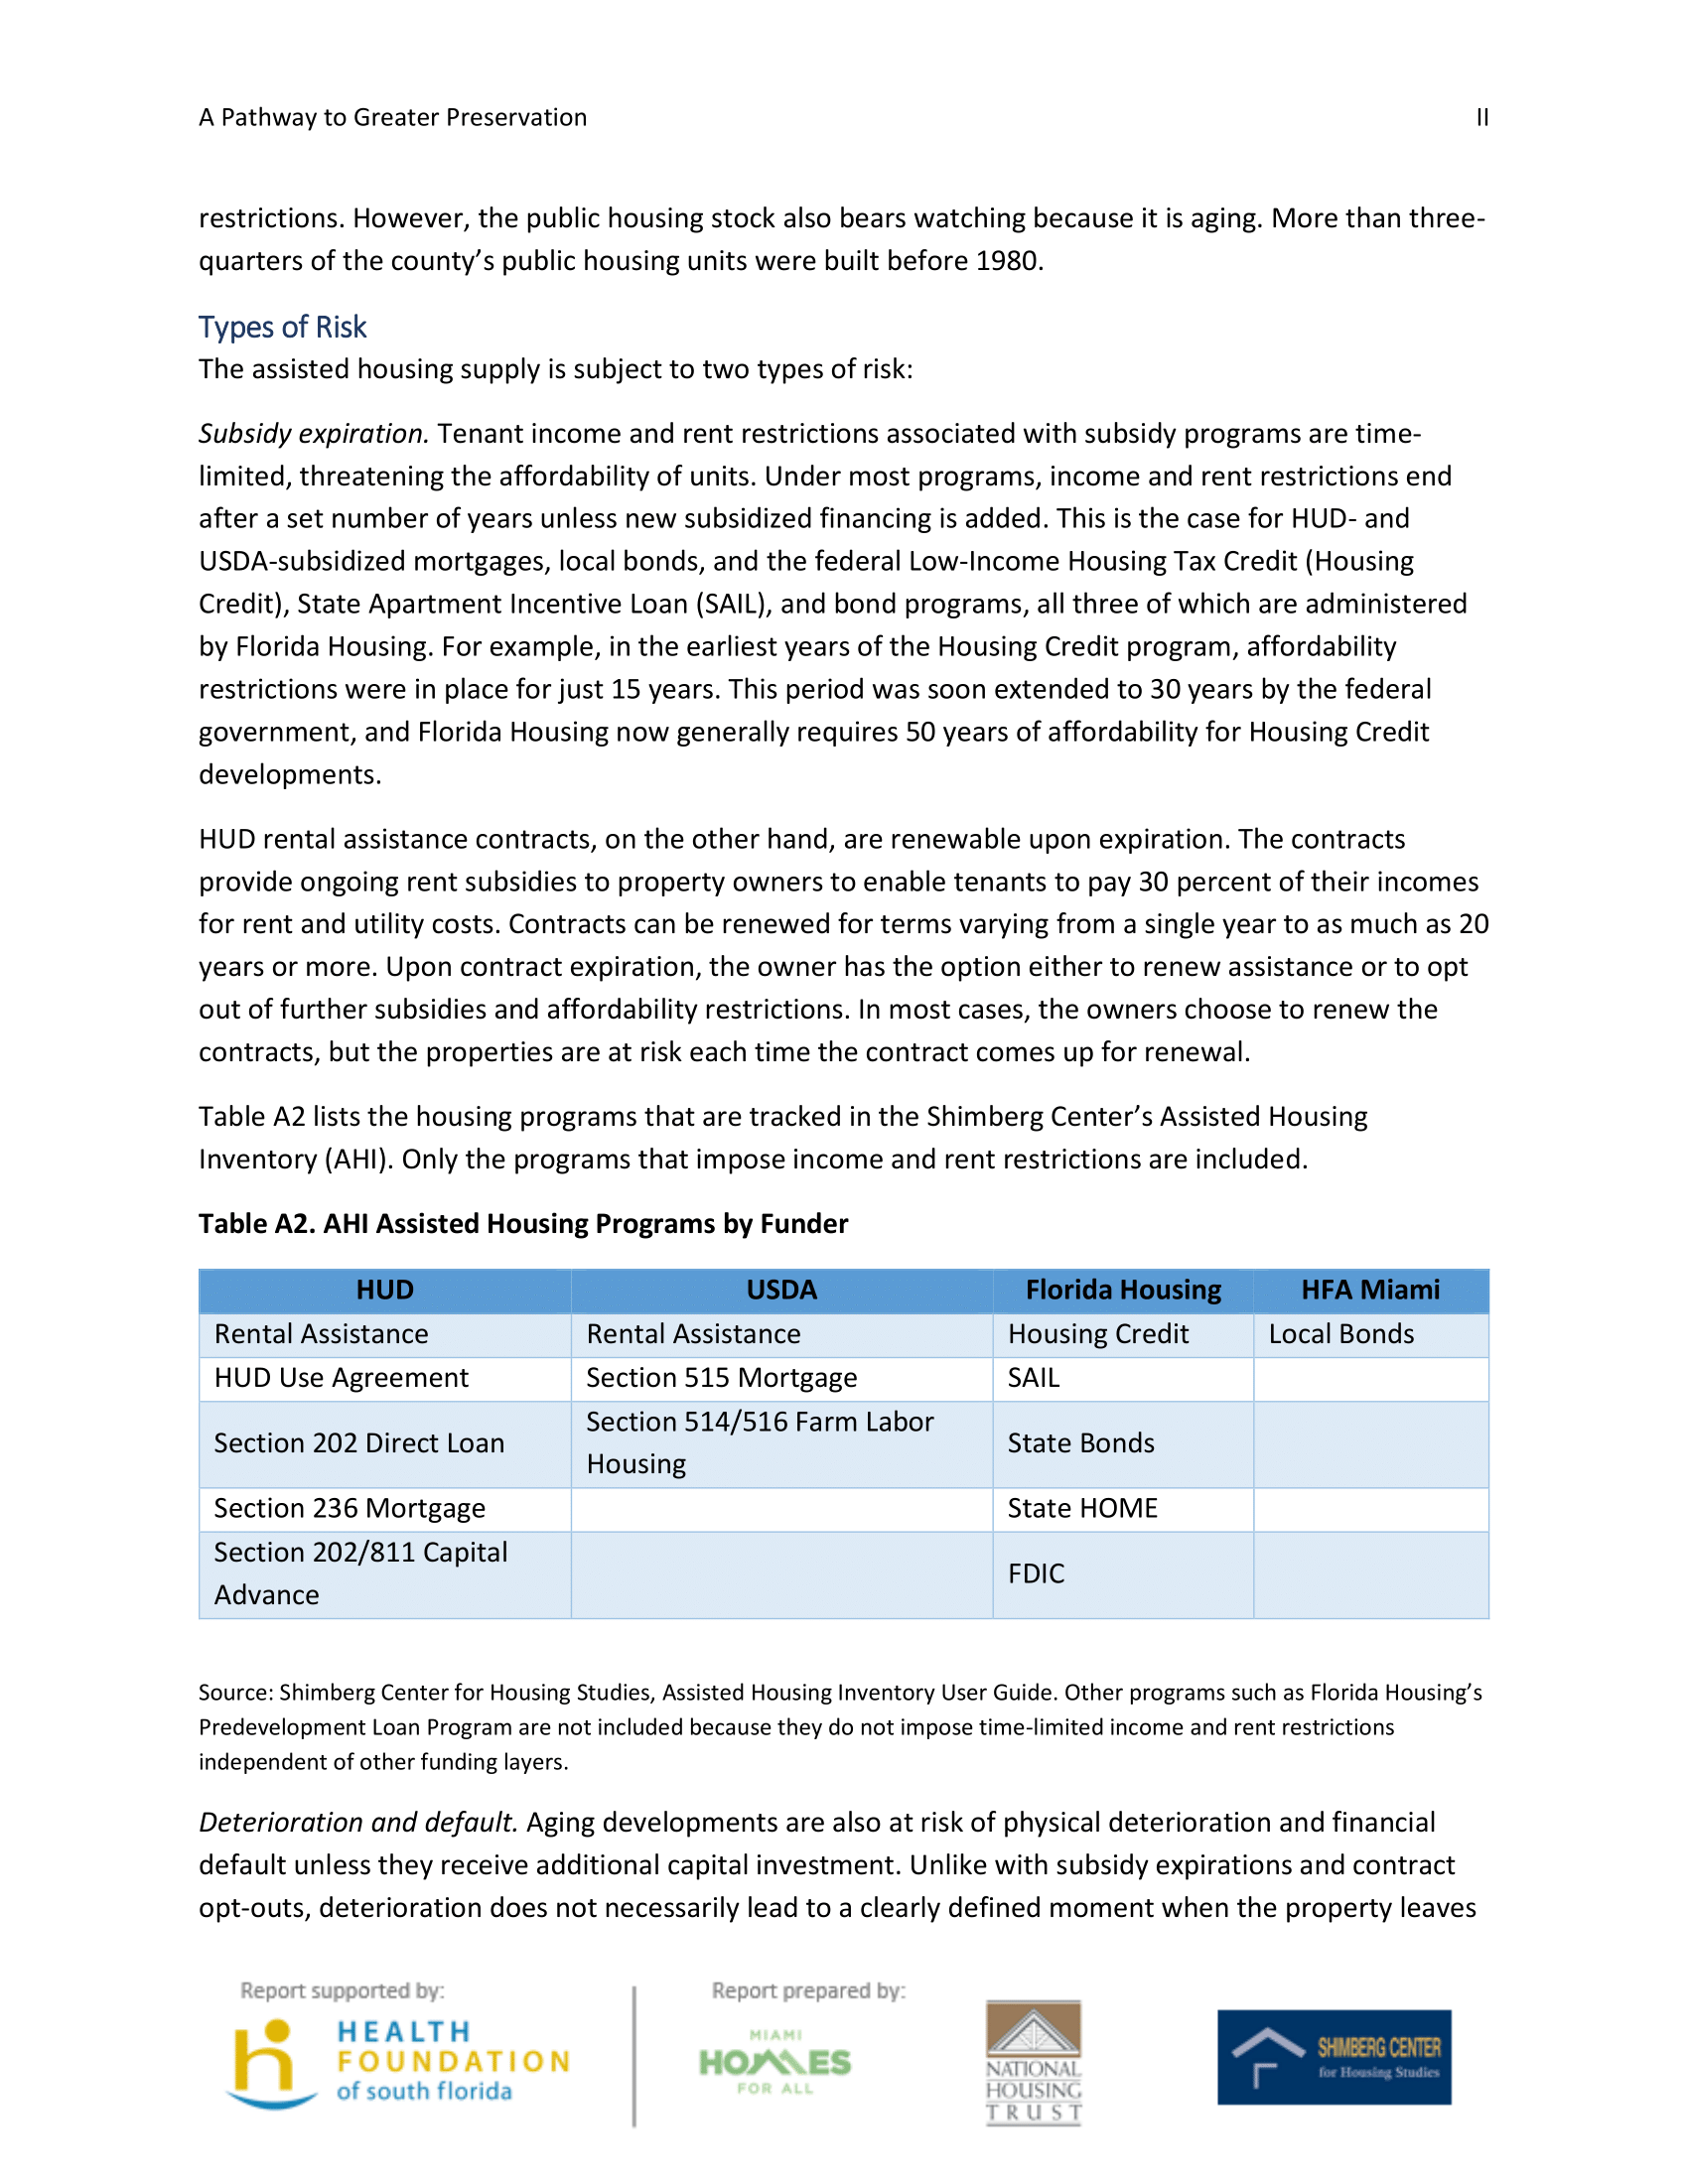 A Pathway to Greater Preservation - February 2018-48.png